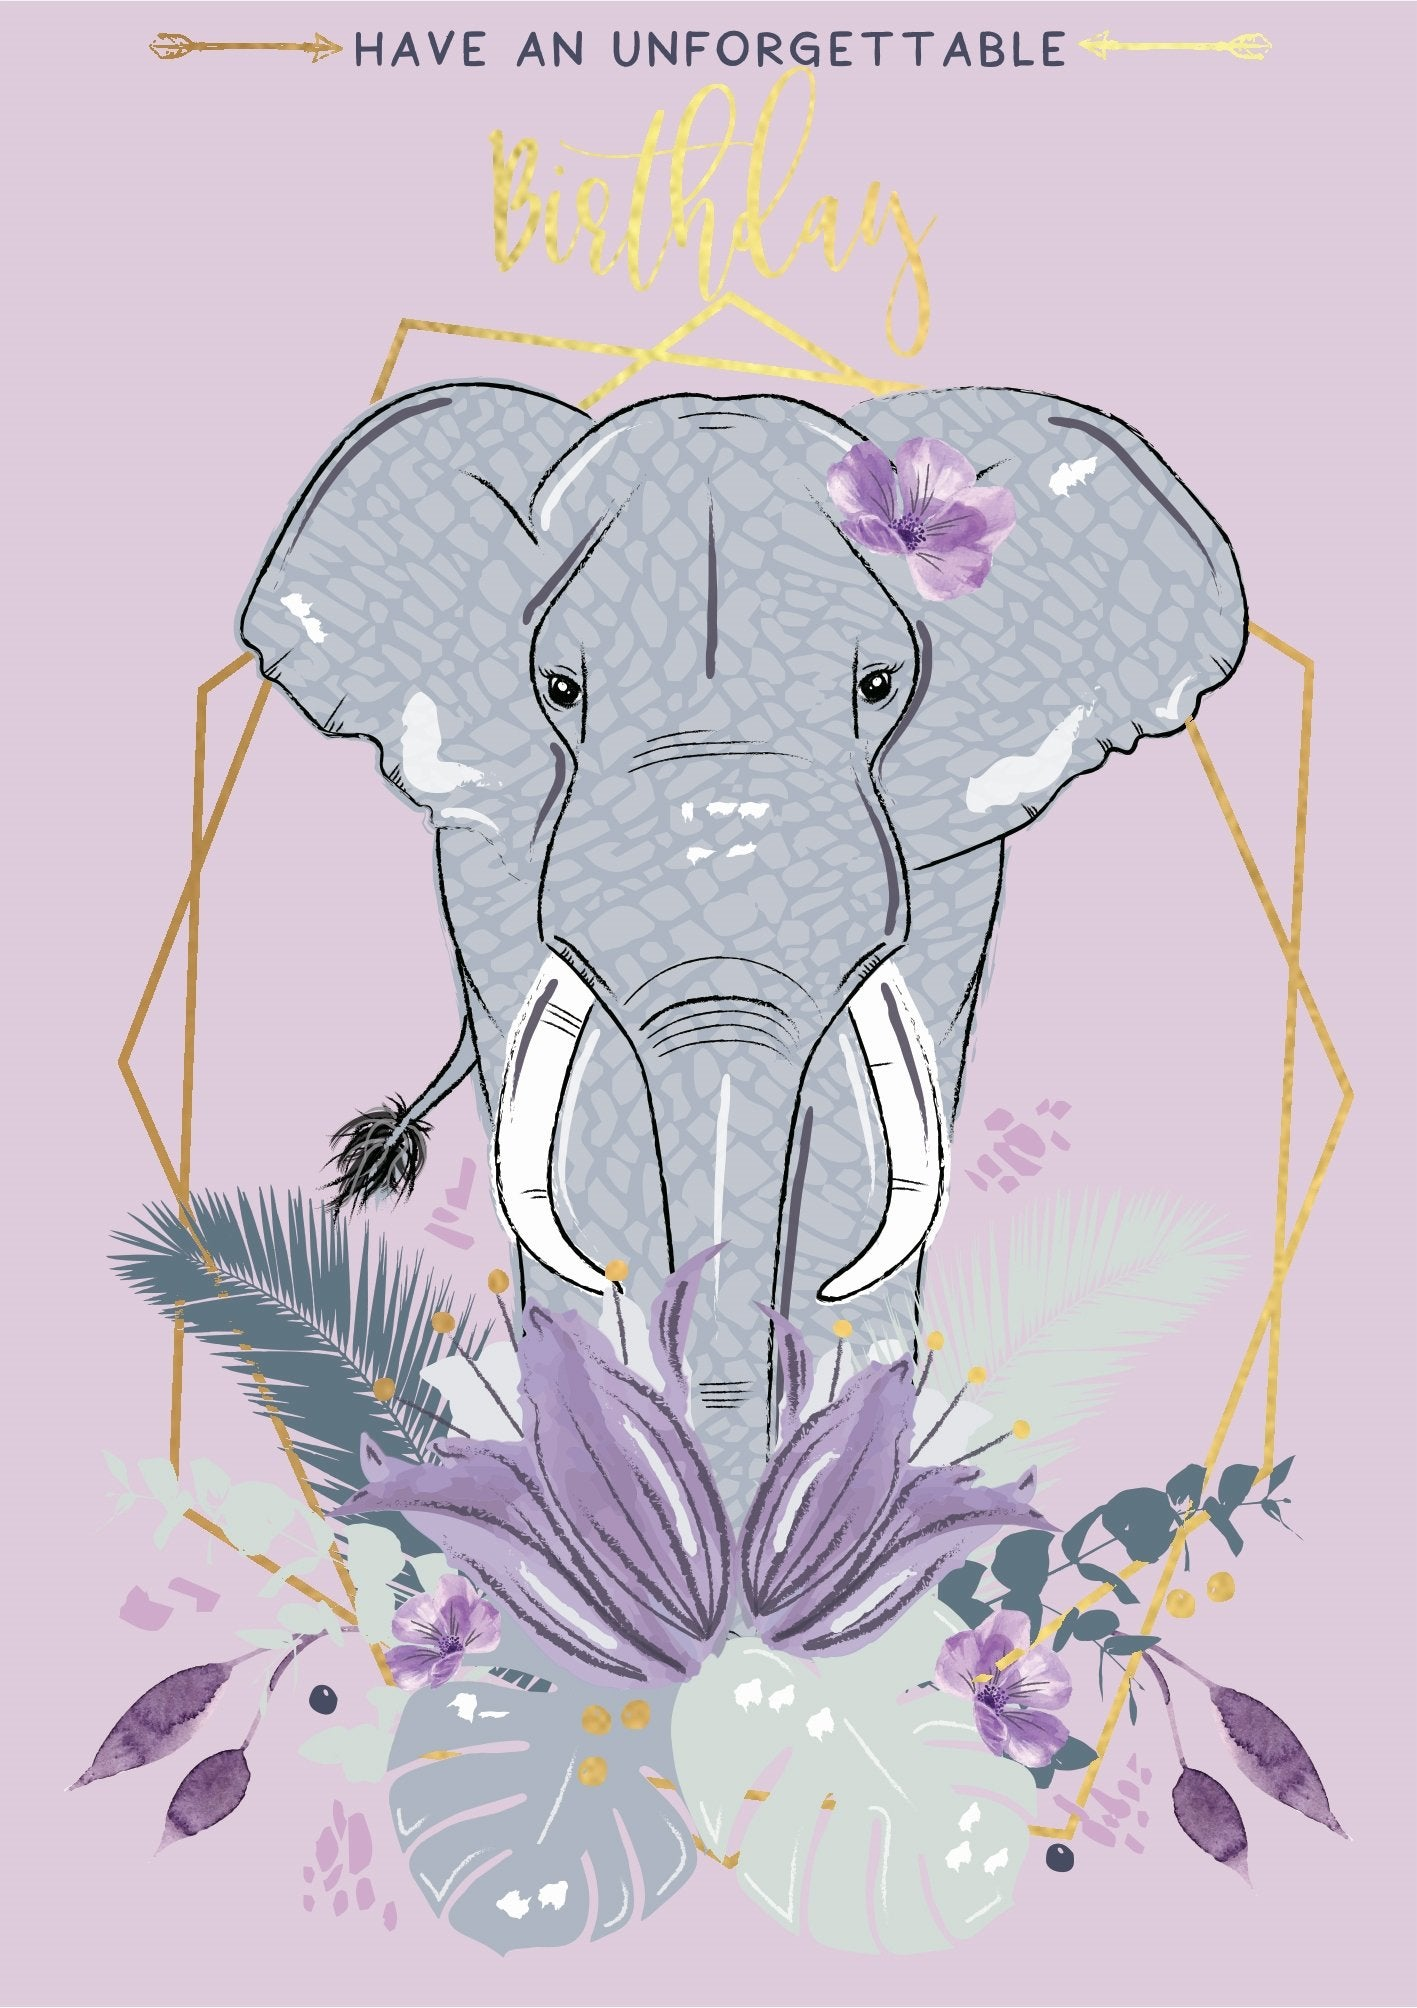 The Handcrafted Card Company Unforgettable Elephant Birthday Card